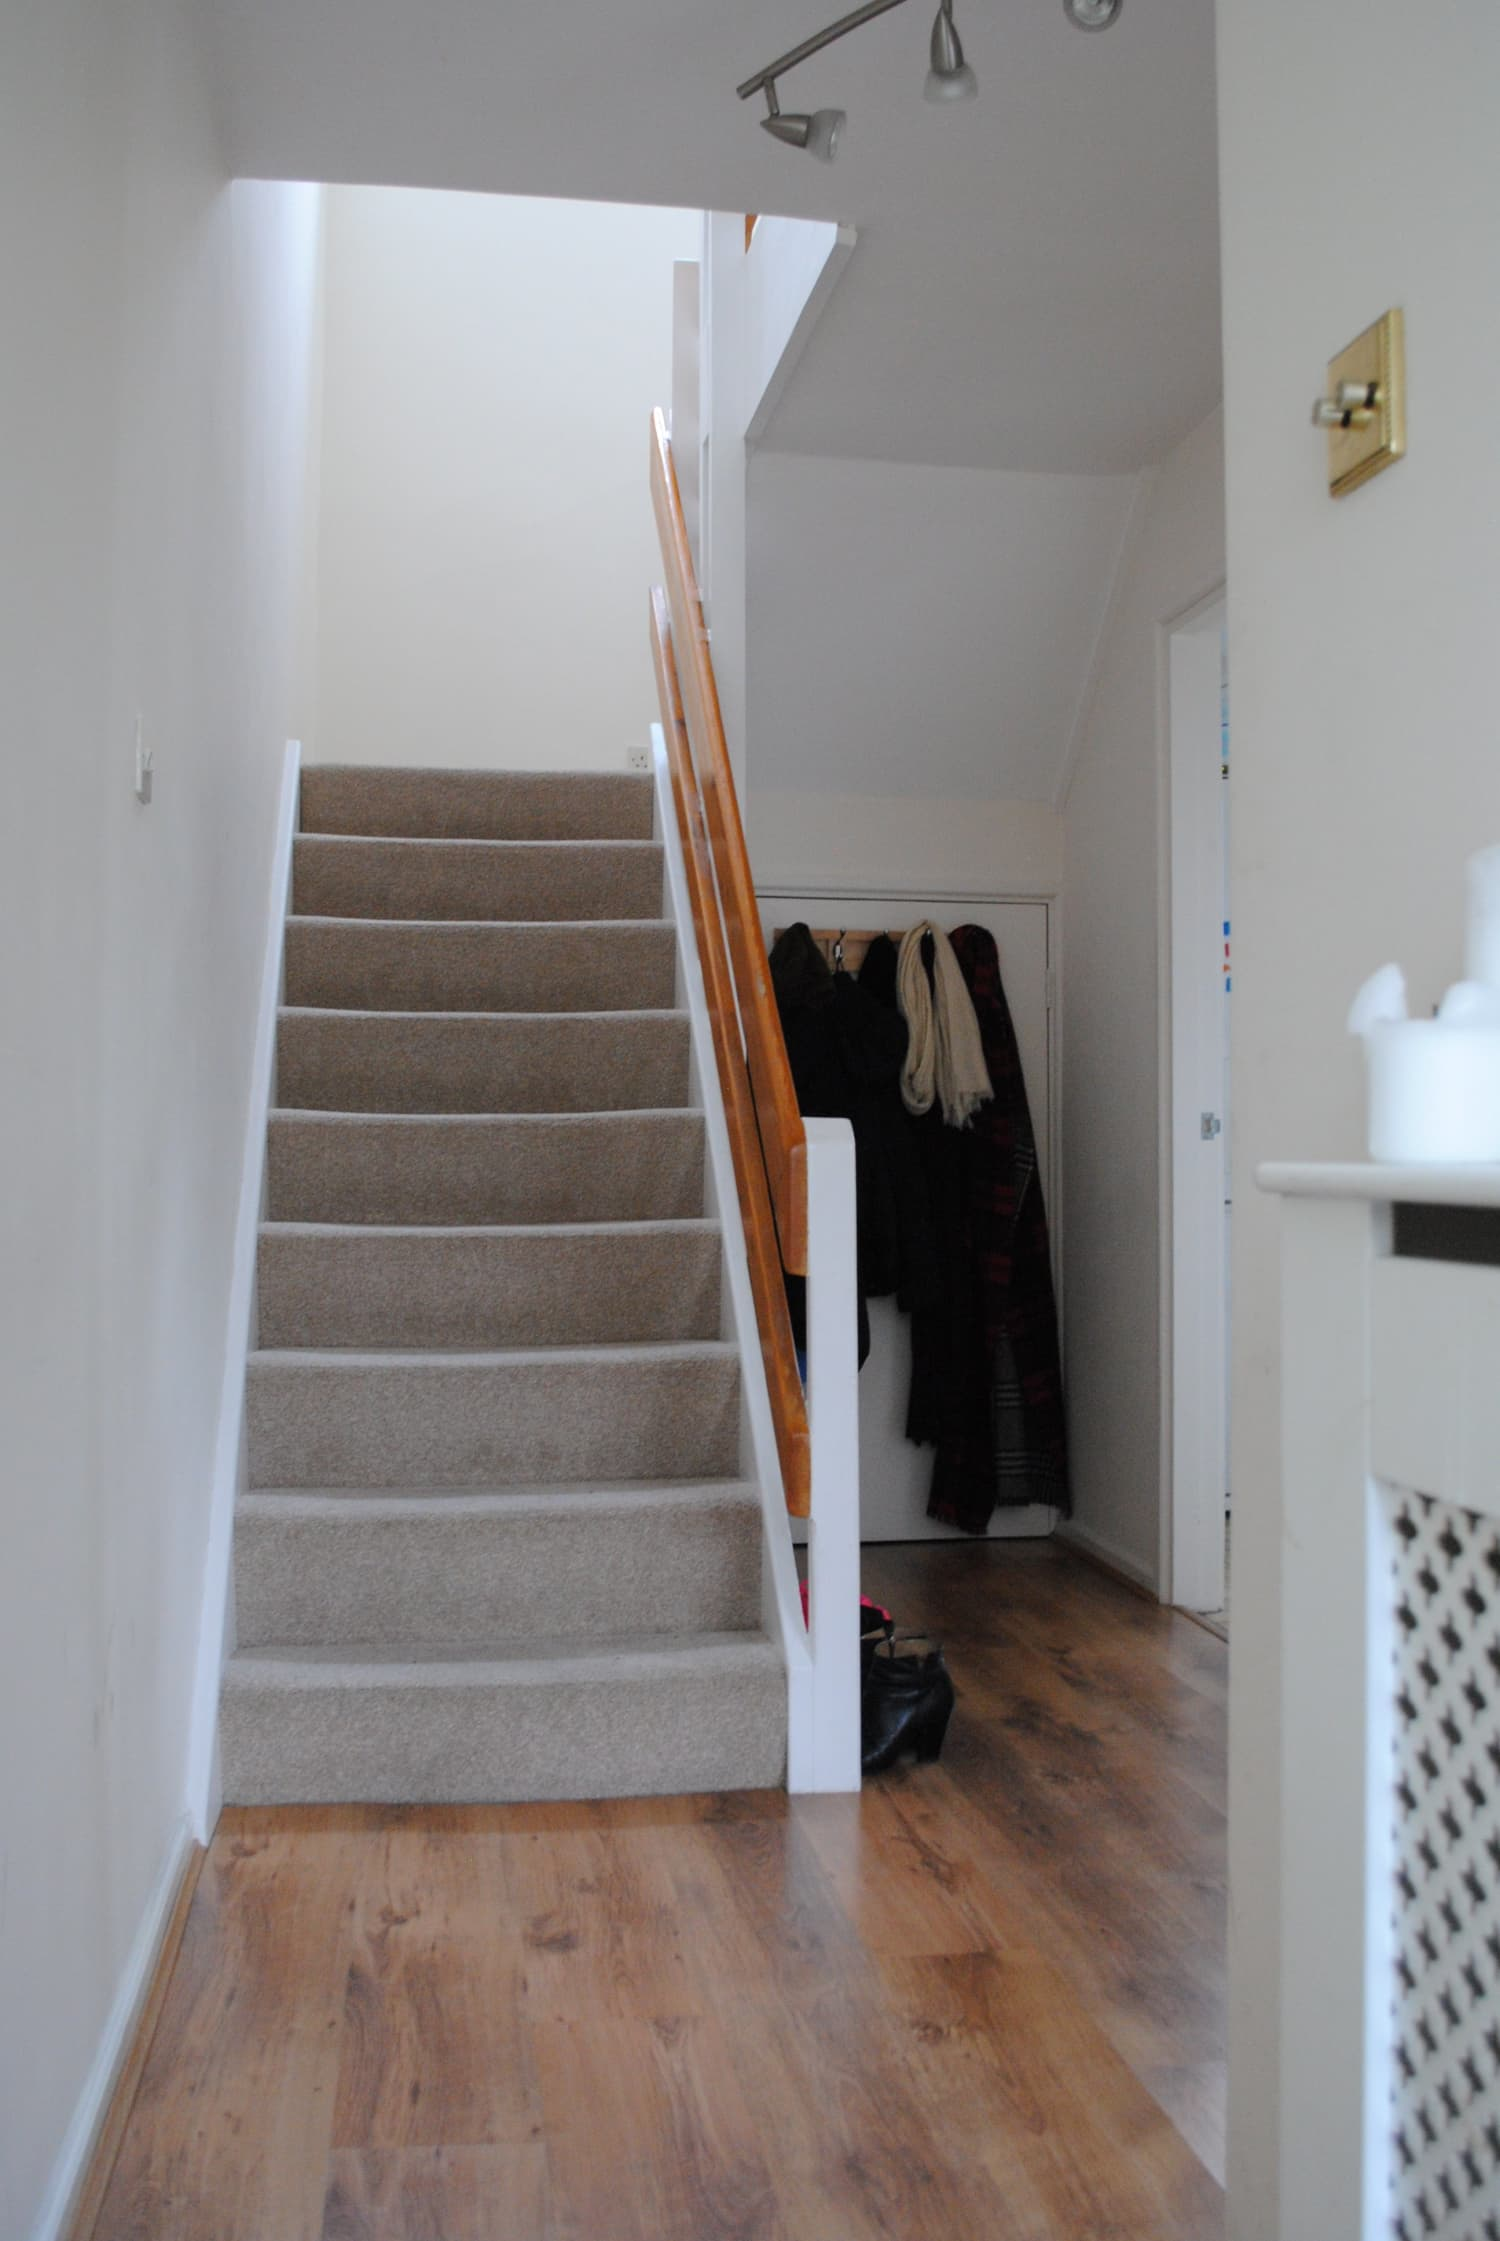 Design Advice Wanted Help What To Do With Stairway